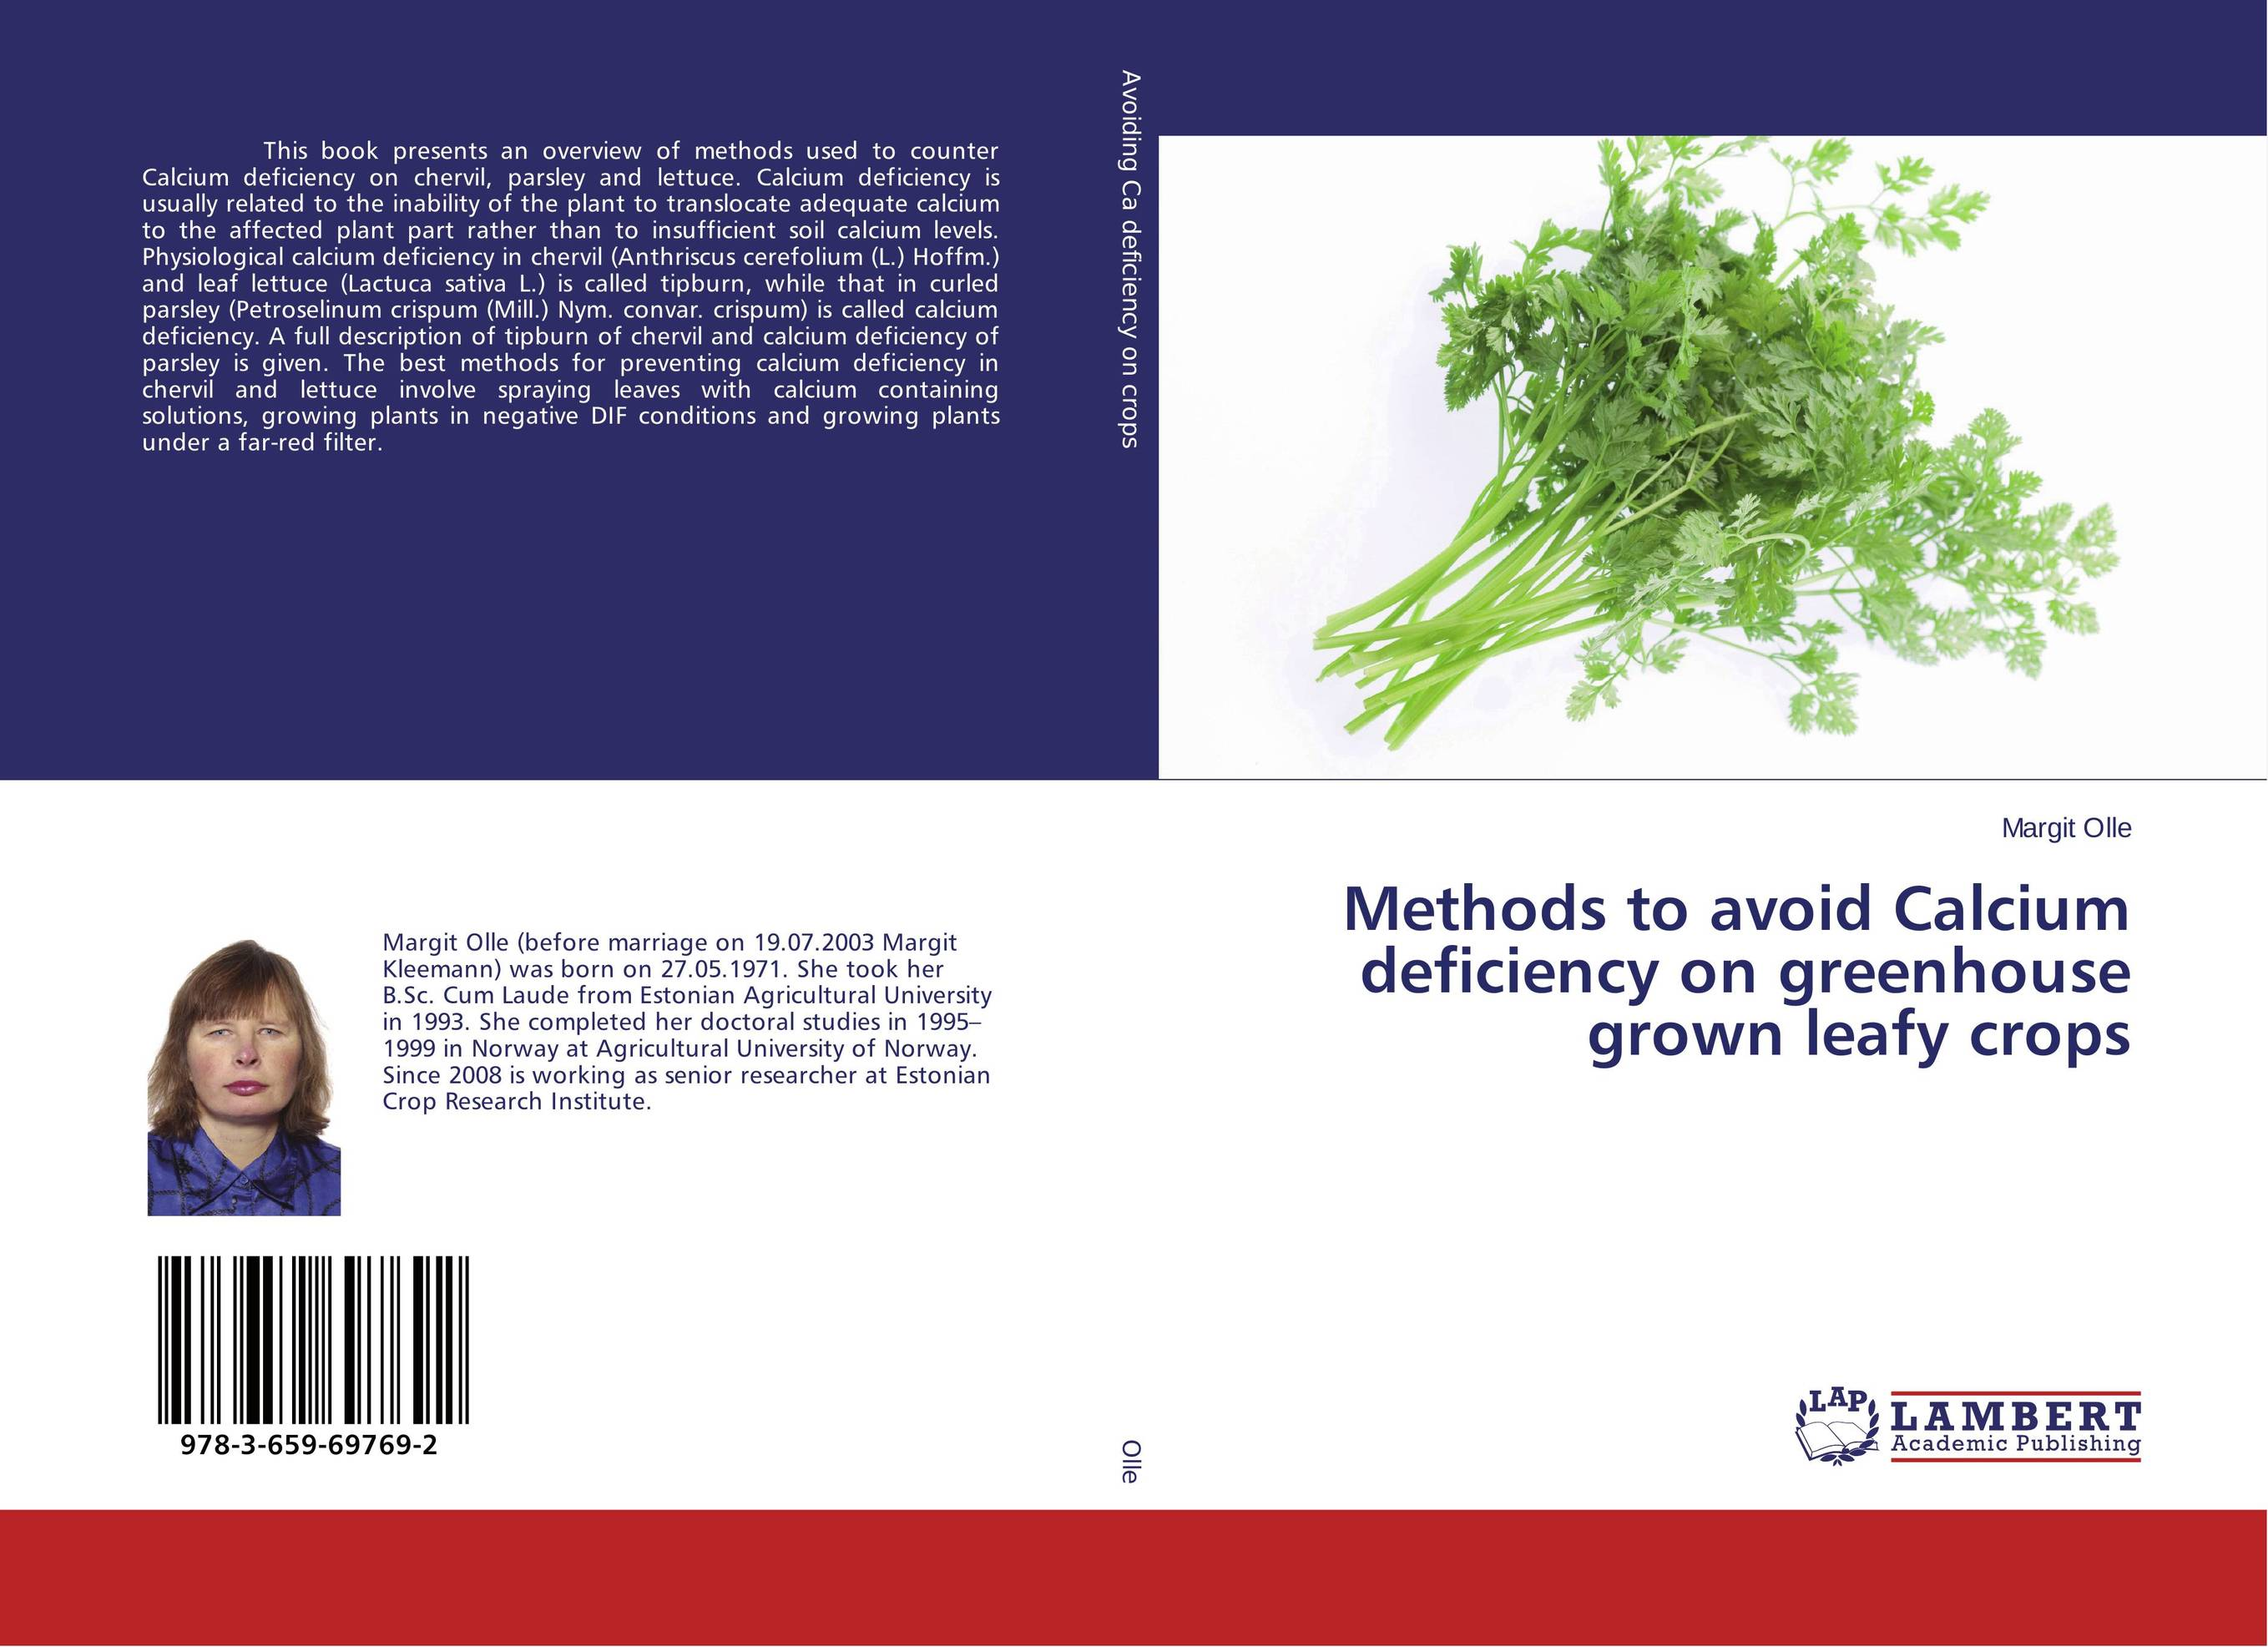 Methods to avoid Calcium deficiency on greenhouse grown leafy crops vitamin d effect on calcium homeostasis in preeclampsia